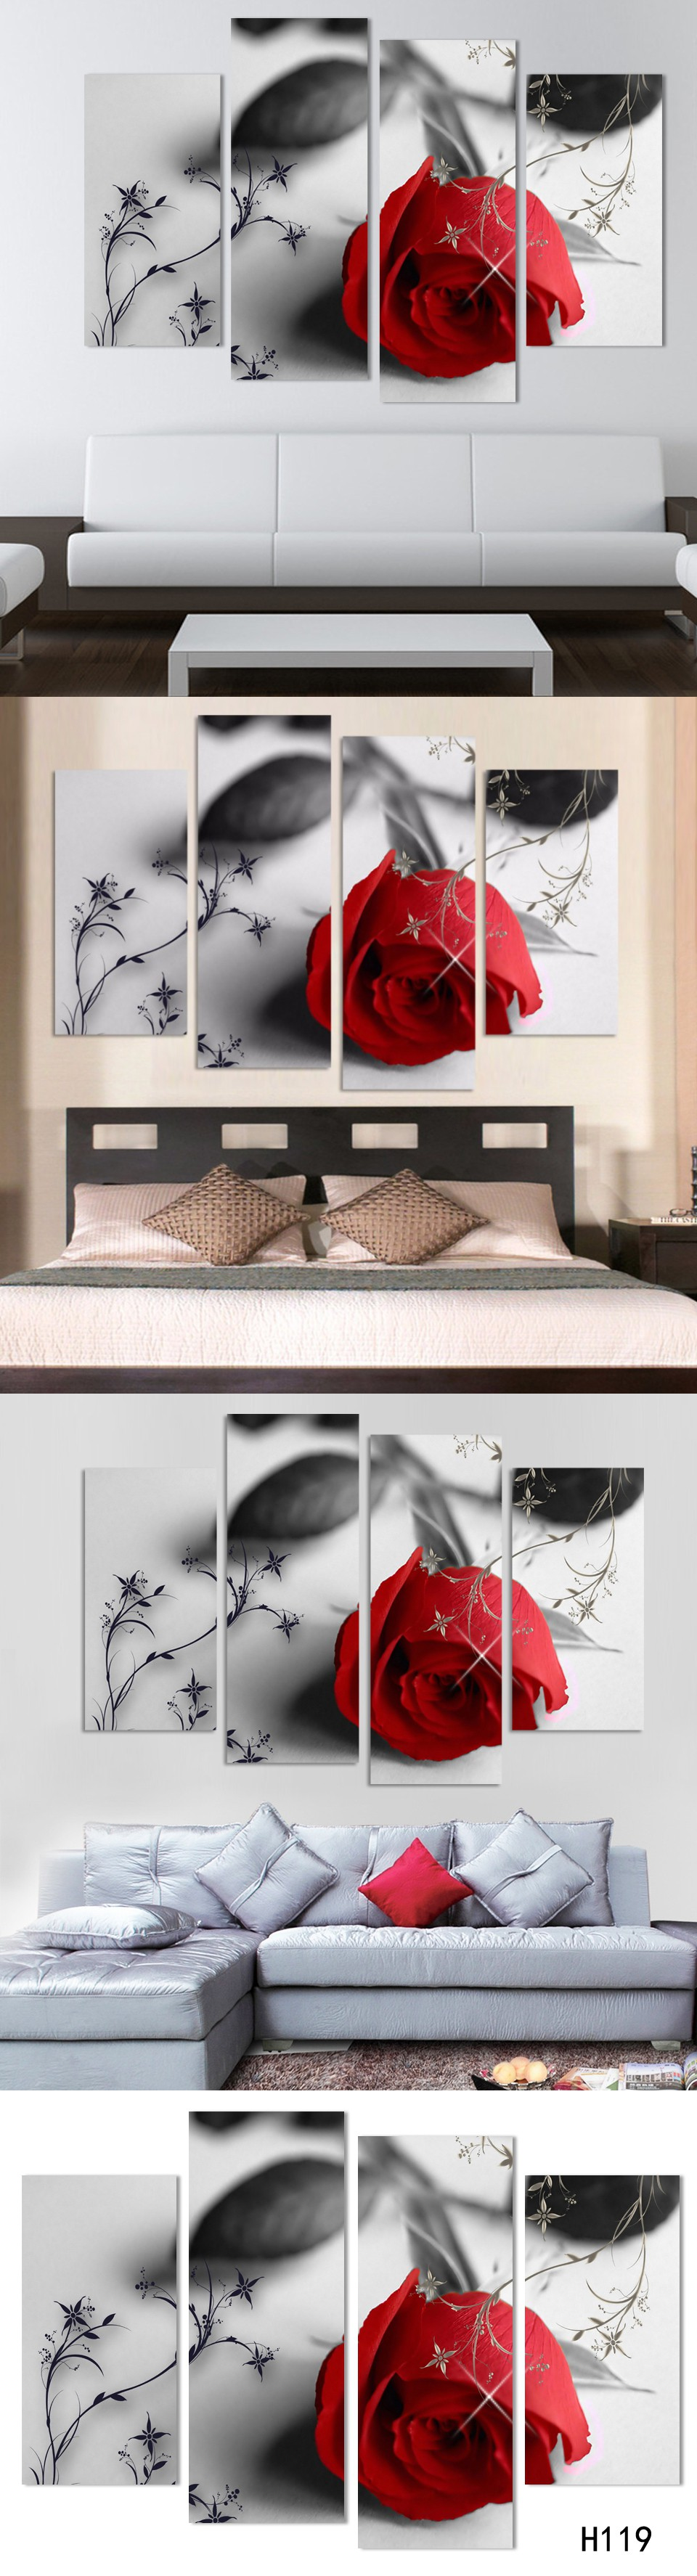 pcs hot sell modern home decoration for living room or bedroom red